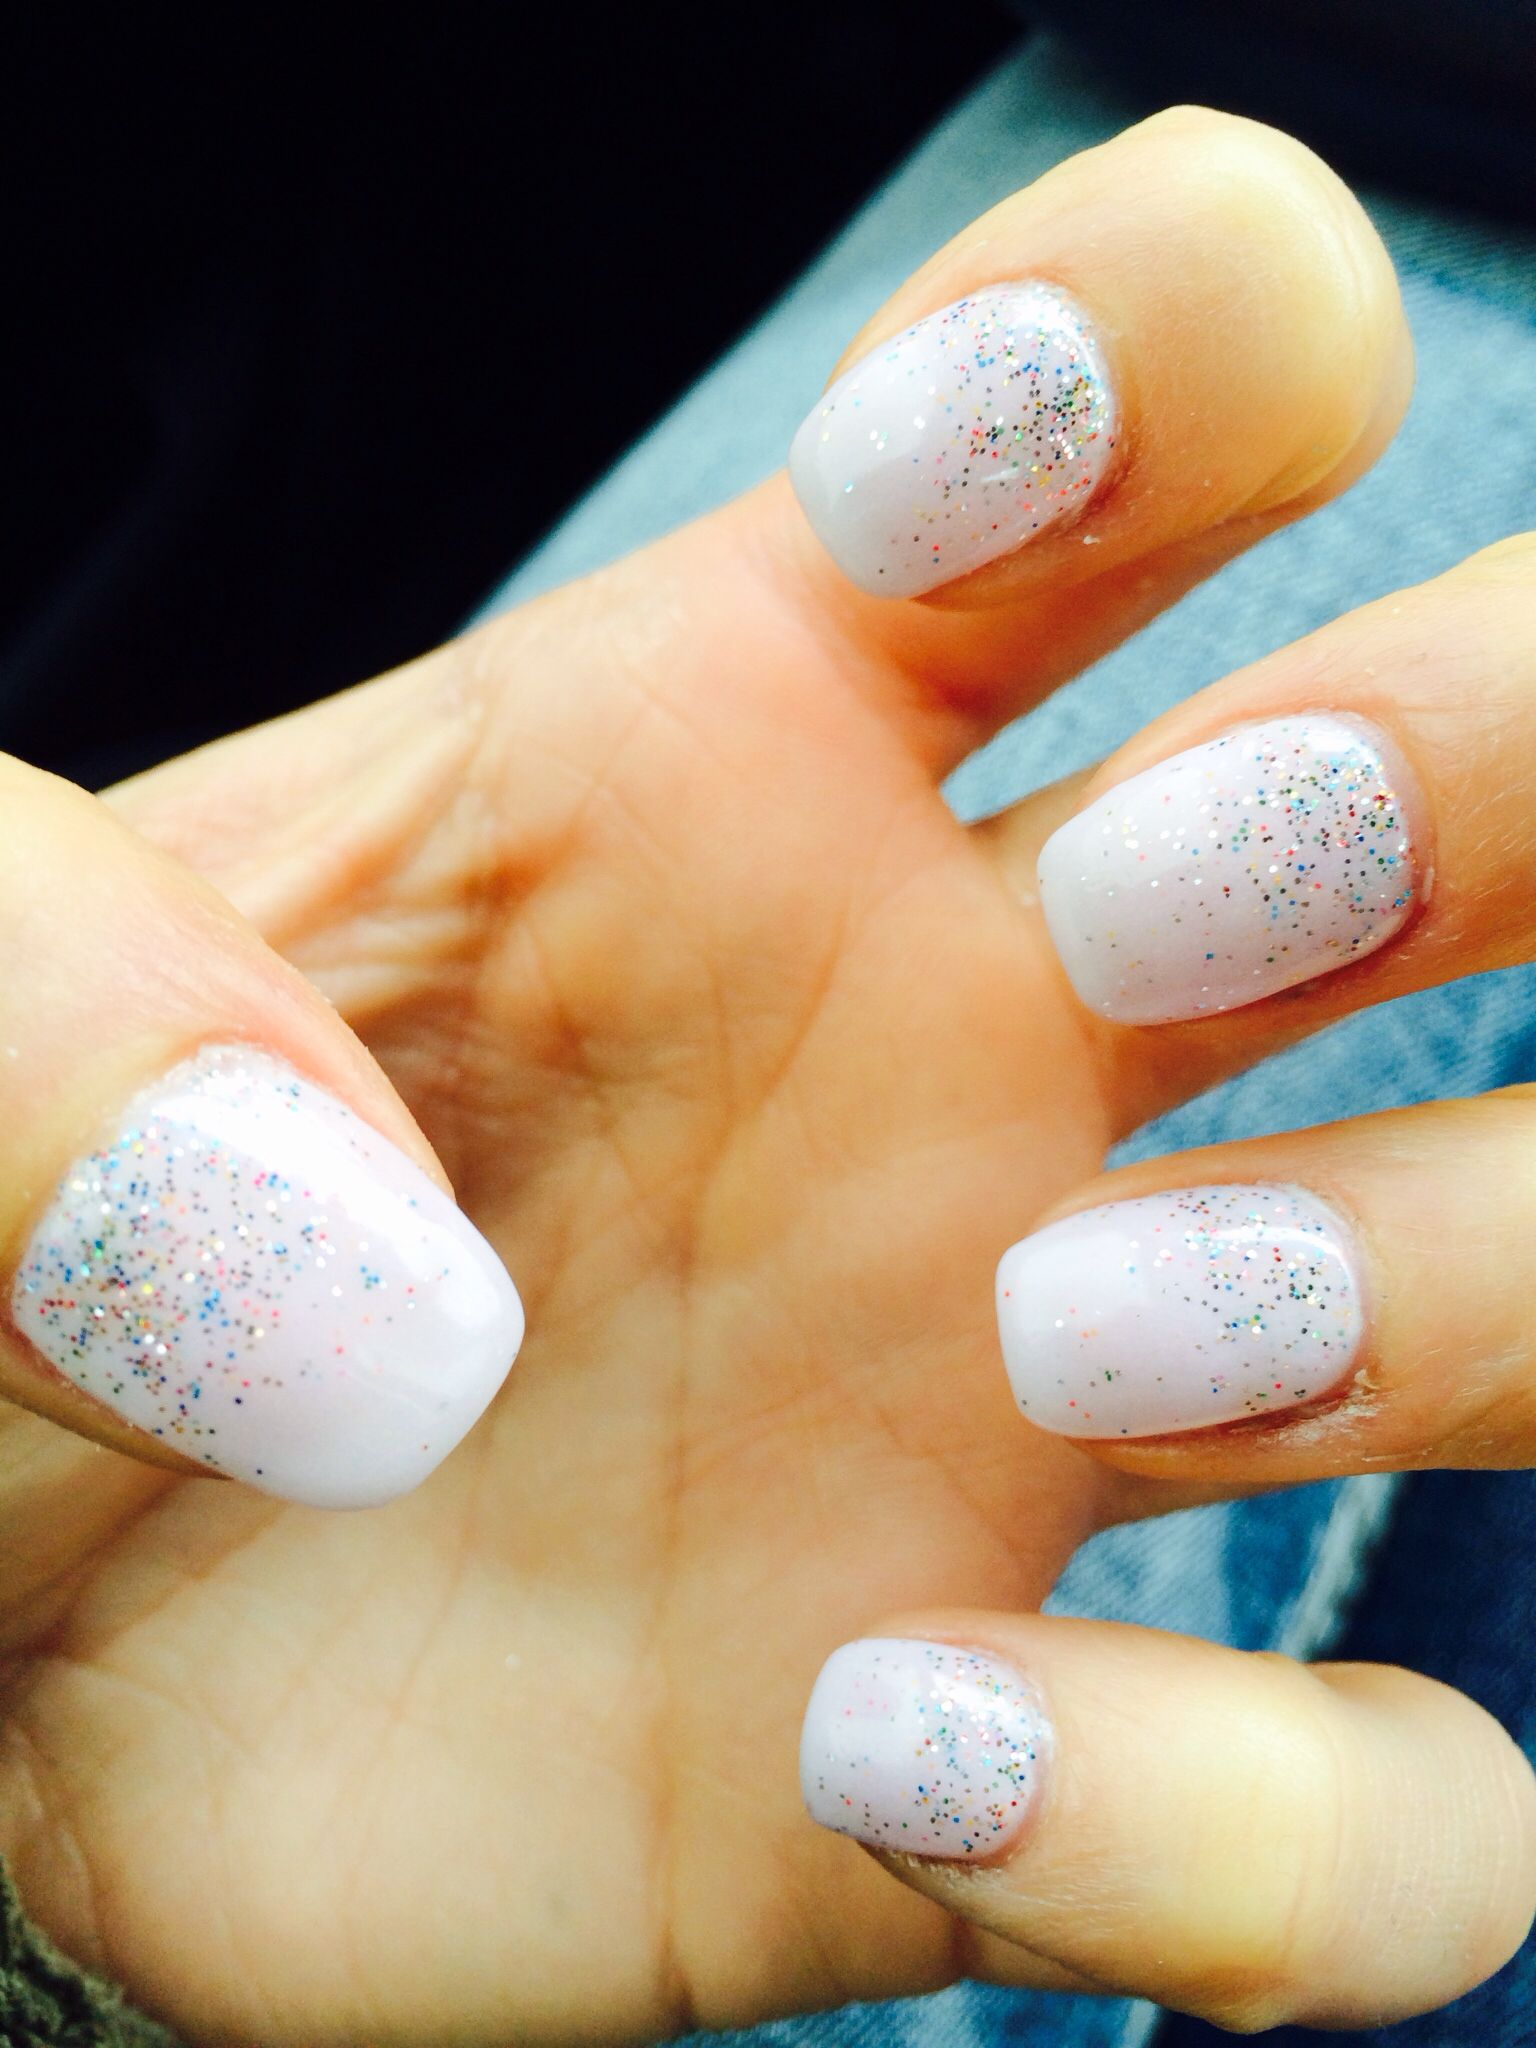 Wintertime ANC 💅❤ 👌 Nails 2017, Winter Time, Fun Nails, Nail - Wintertime ANC 💅❤ 👌 Nails Nails, Nails 2017, Nail Designs